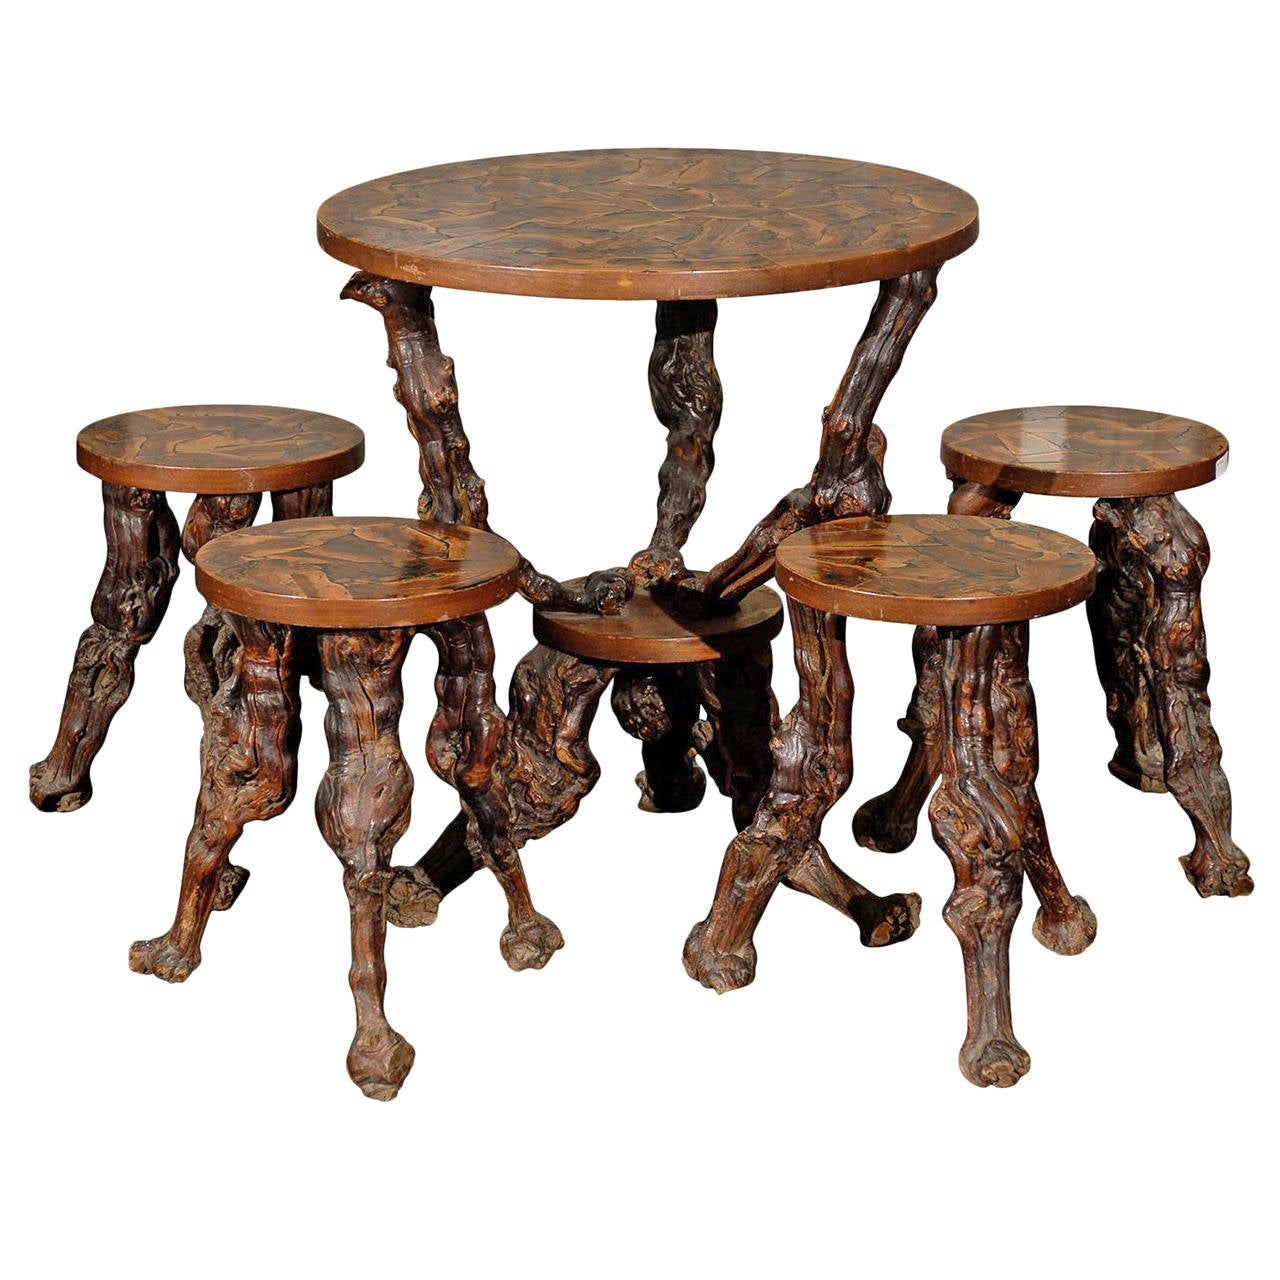 Set of European Grapevine Round Table and Four Accompanying Stools 1  sc 1 st  1stDibs & Set of European Grapevine Round Table and Four Accompanying Stools ... islam-shia.org